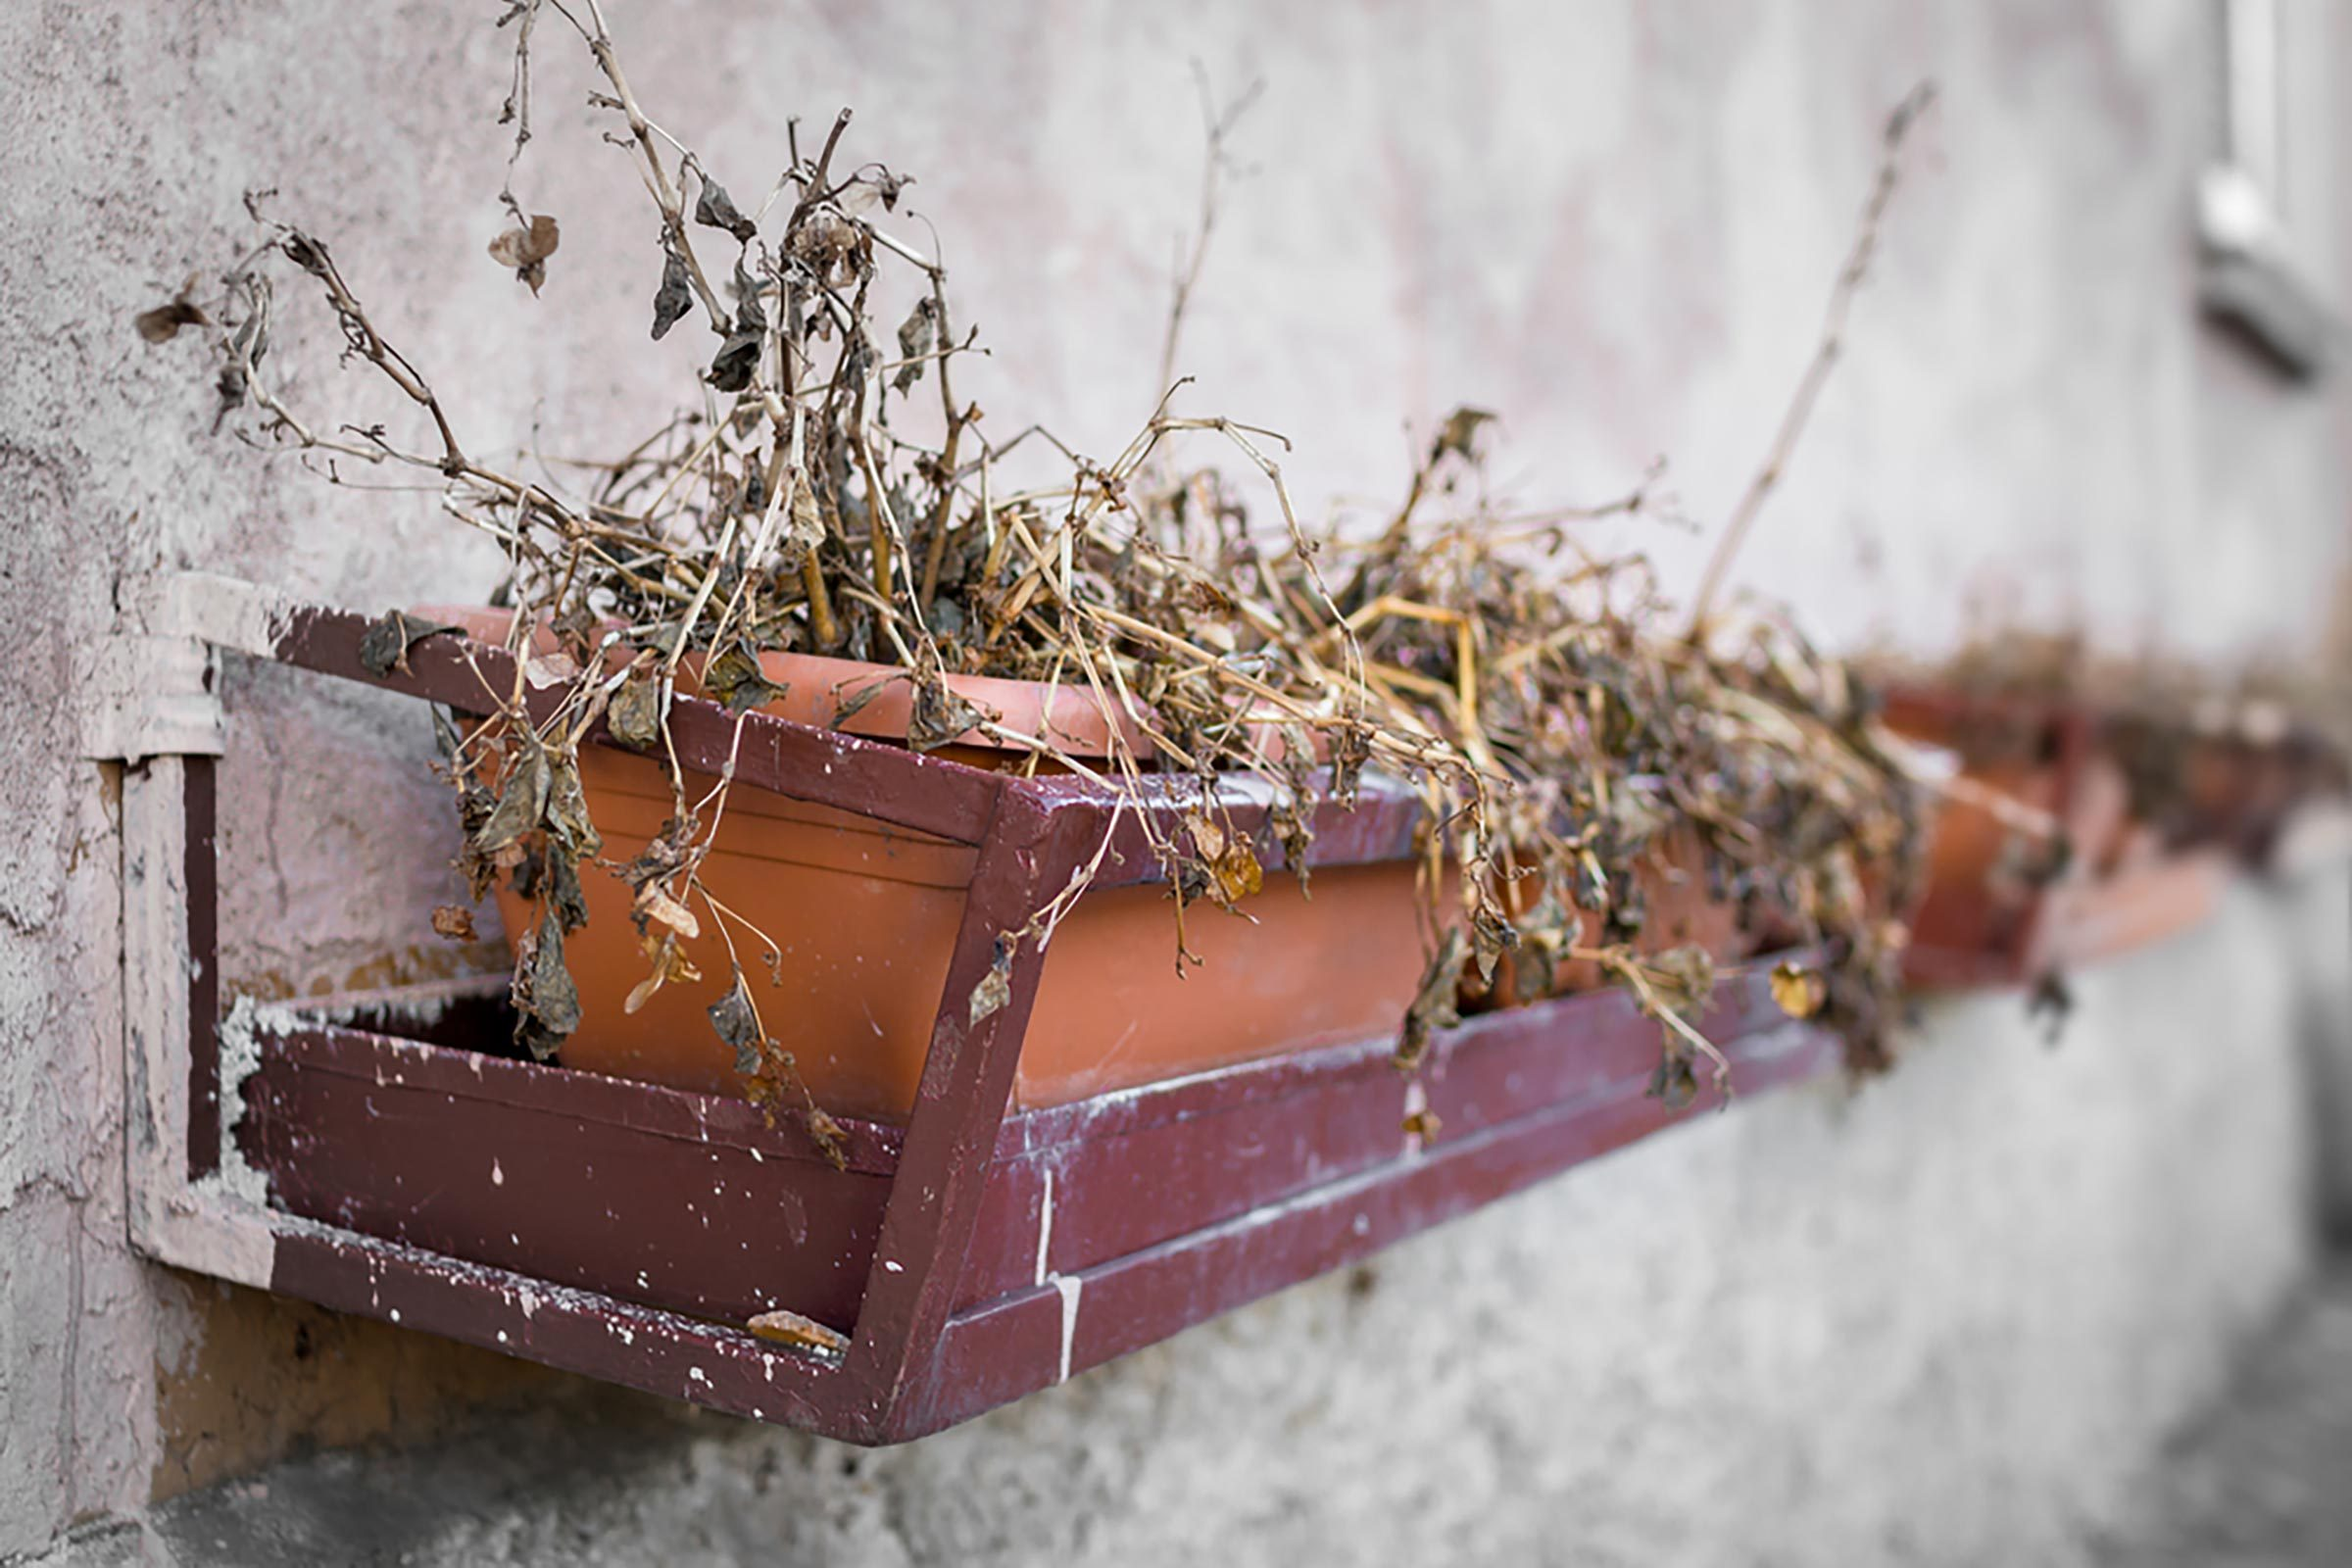 How to Revive a Dead Plant | Reader's Digest